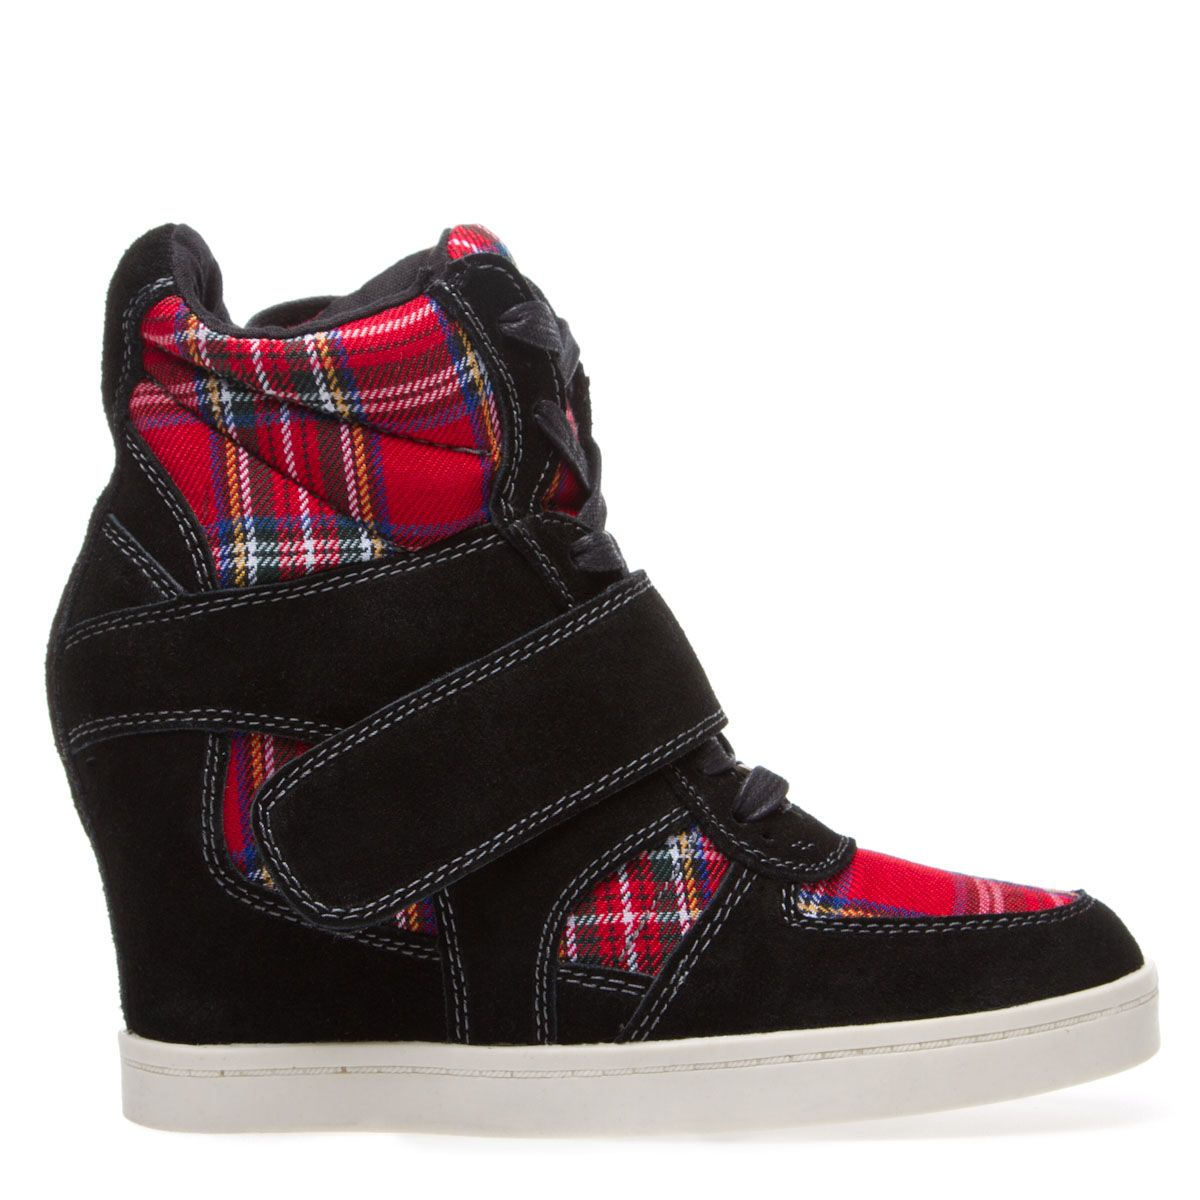 9170629c134 Plaid kicks! Love these! Like high heeled sneakers! Great for shorties like  me that want to look sporty but not short!